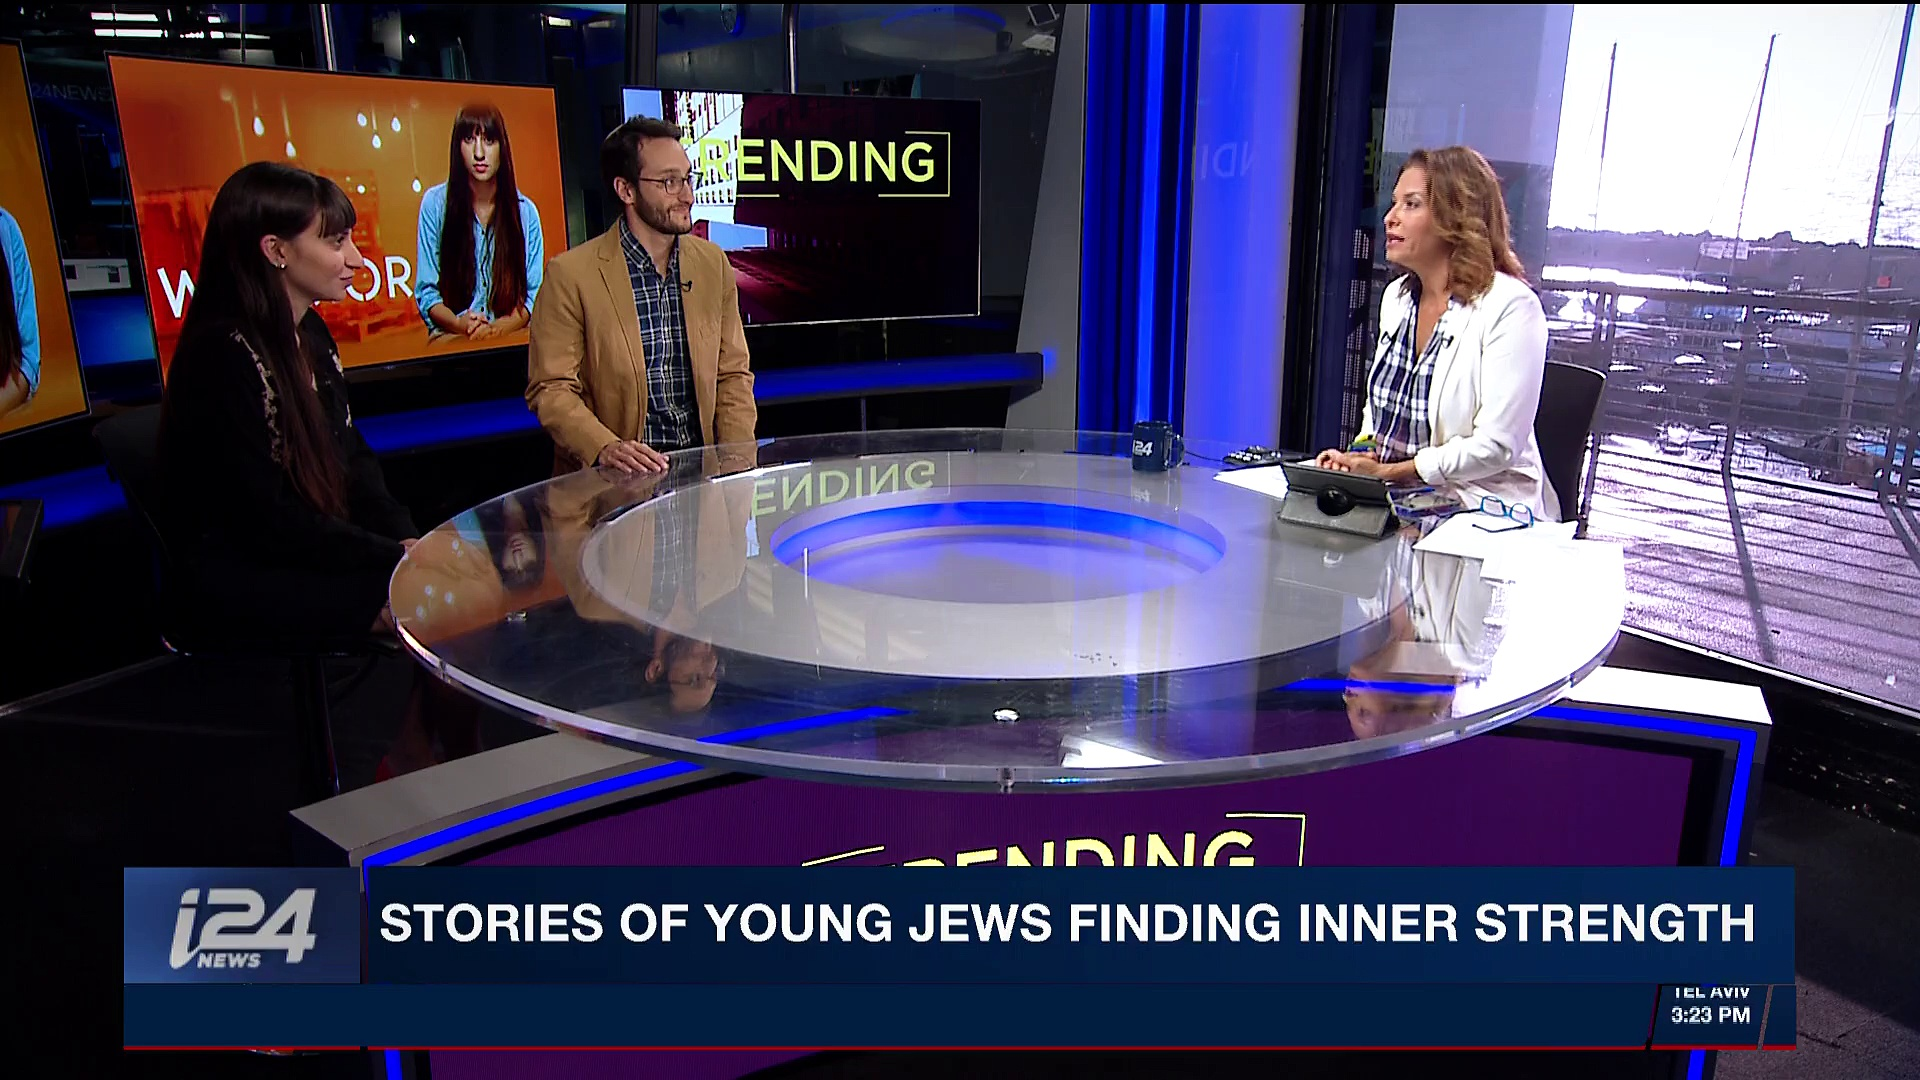 TRENDING | Stories of young Jews finding inner strength | Tuesday, November 7th 2017